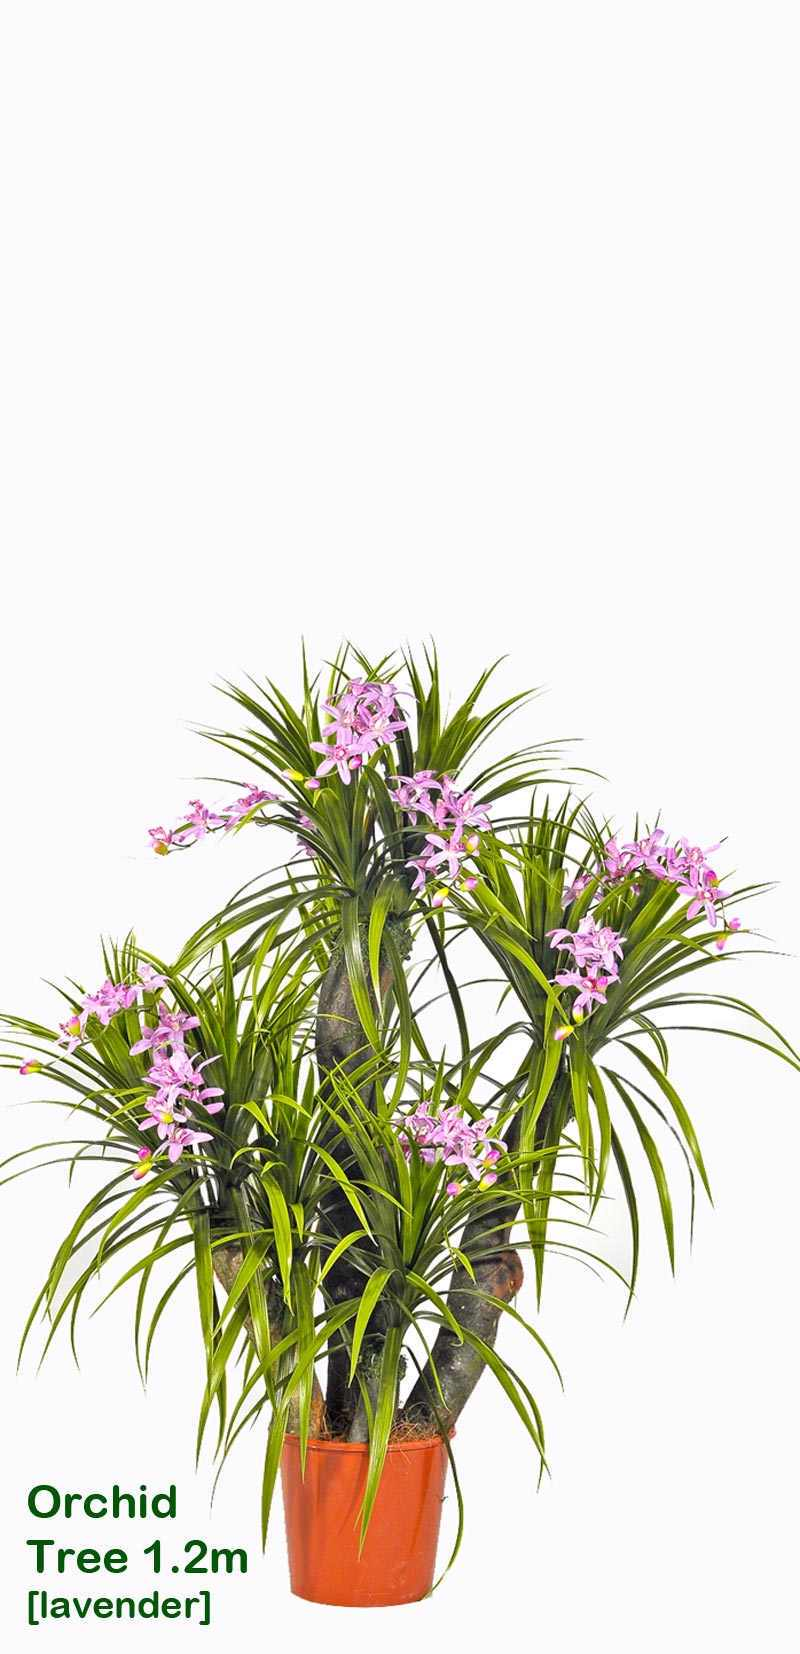 Orchid Trees 1m